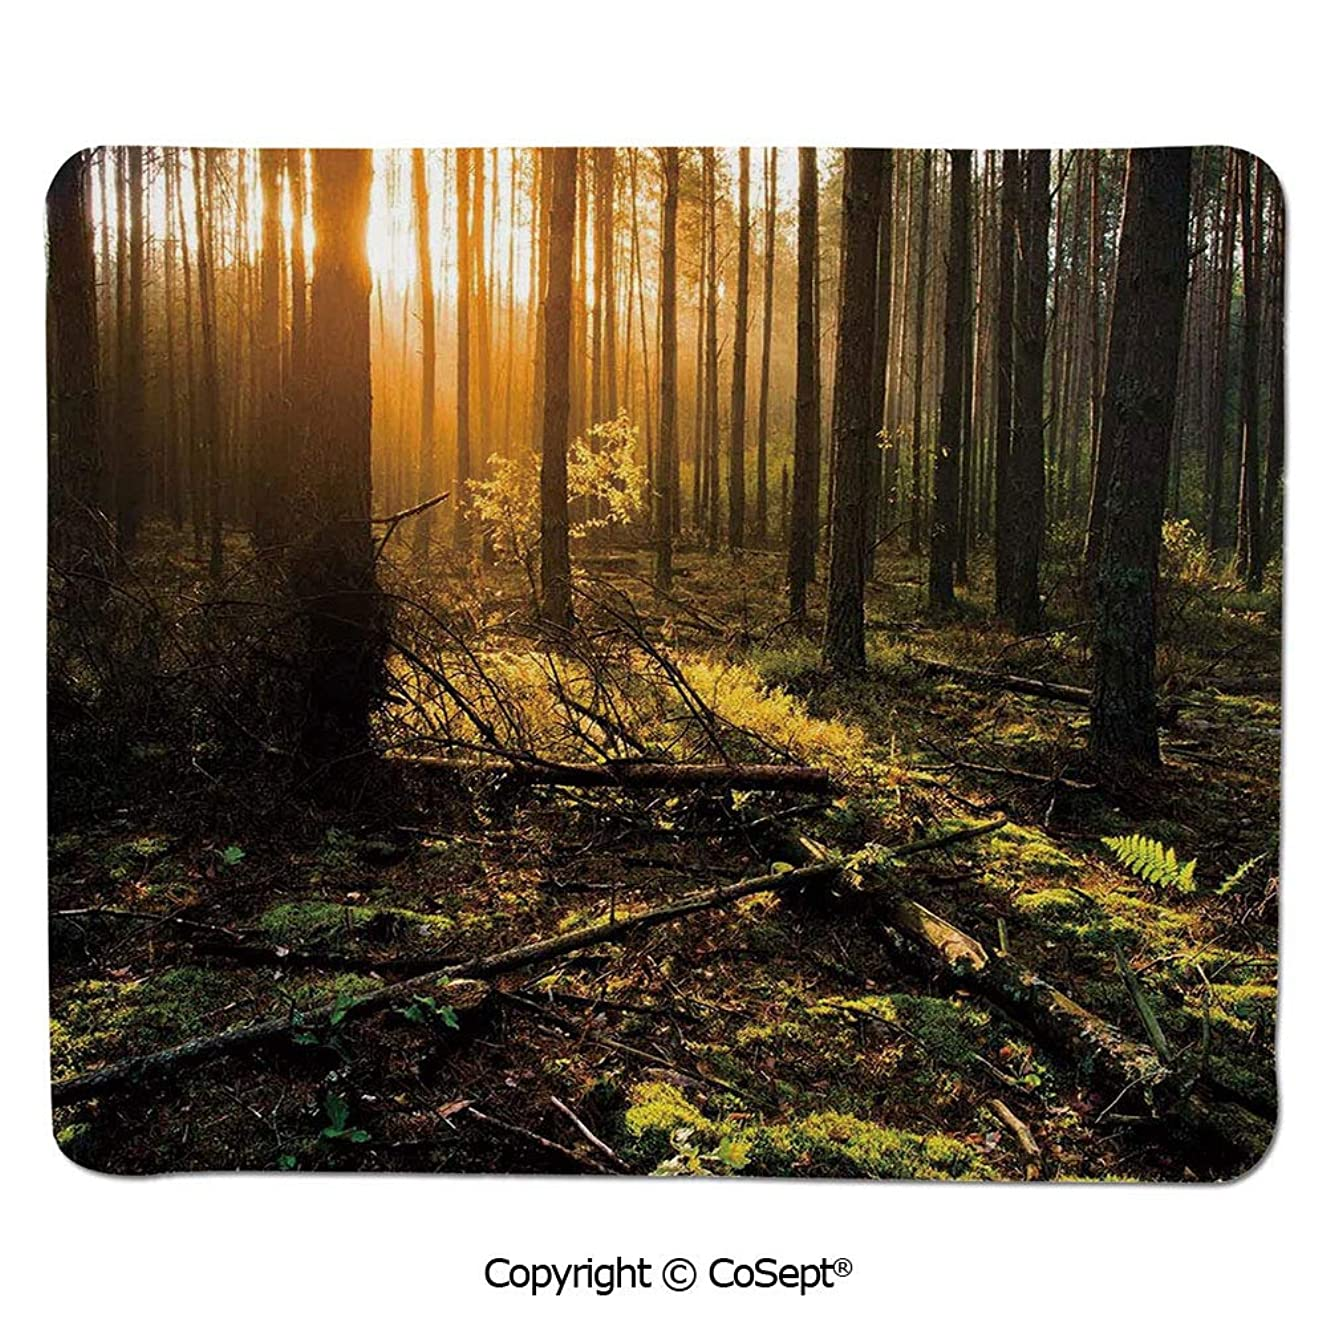 Quality Selection Comfortable Mouse Pad,Misty Morning in The Forest with Sun Rays Mother Earth Foliage Dawn Picture,Water-Resistant,Non-Slip Base,Ideal for Gaming (11.81